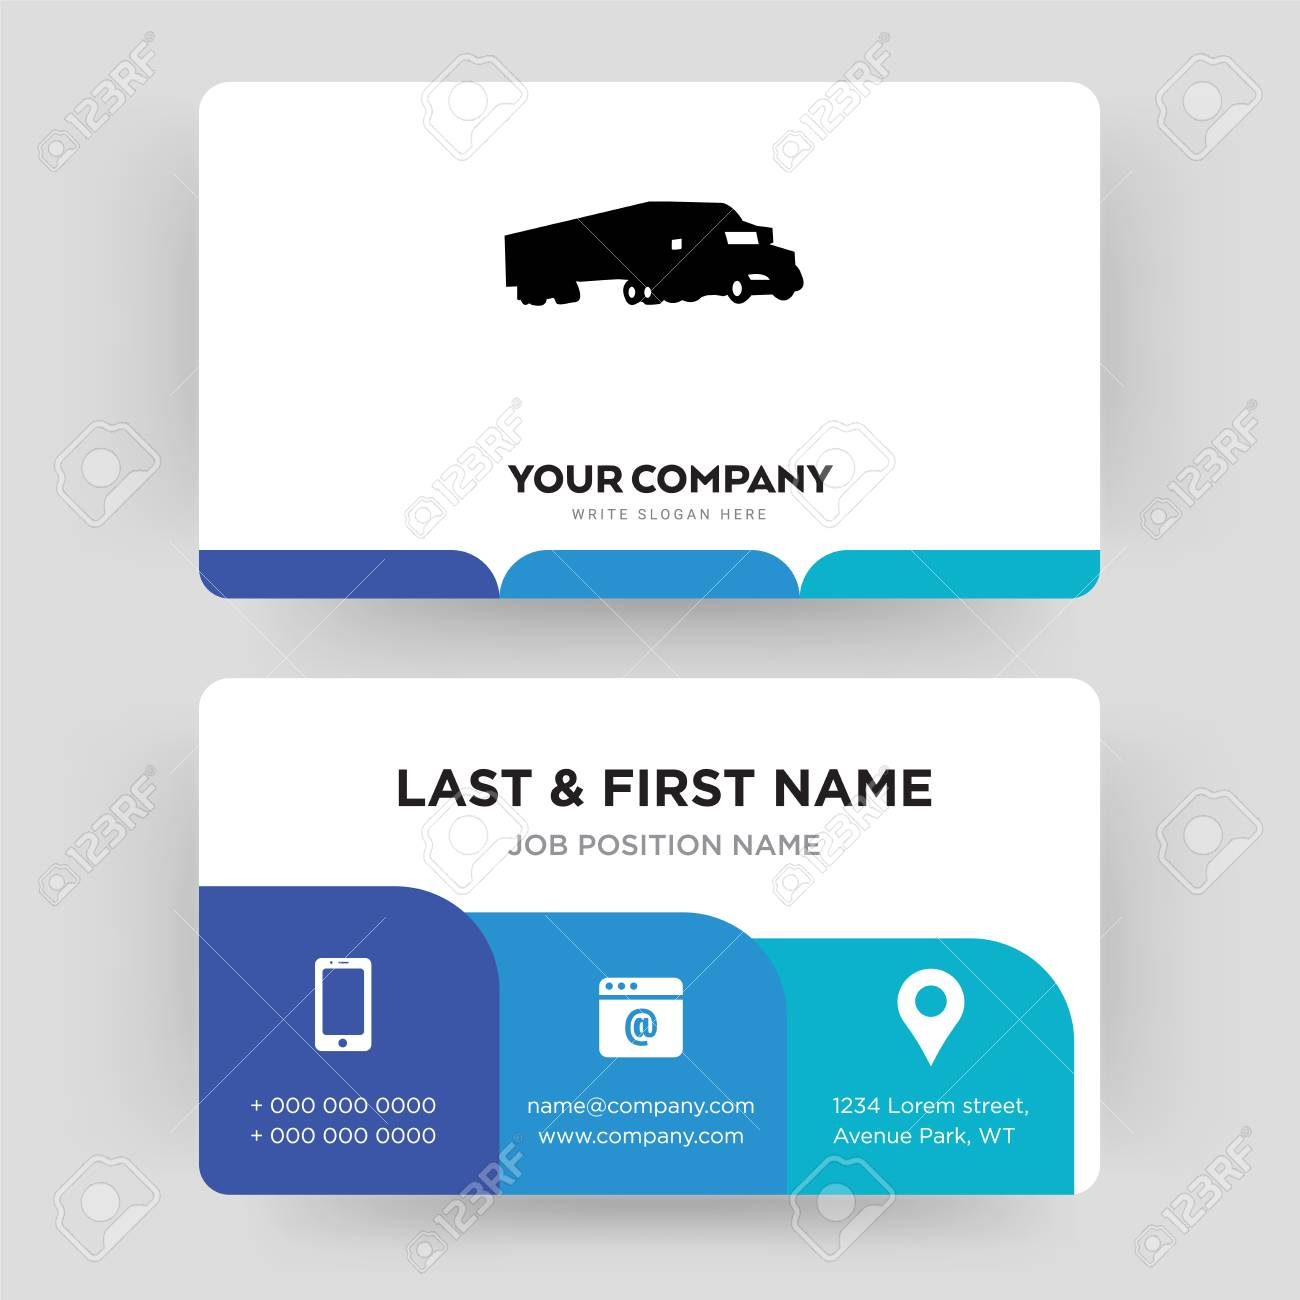 semi truck, business card design template, Visiting for your